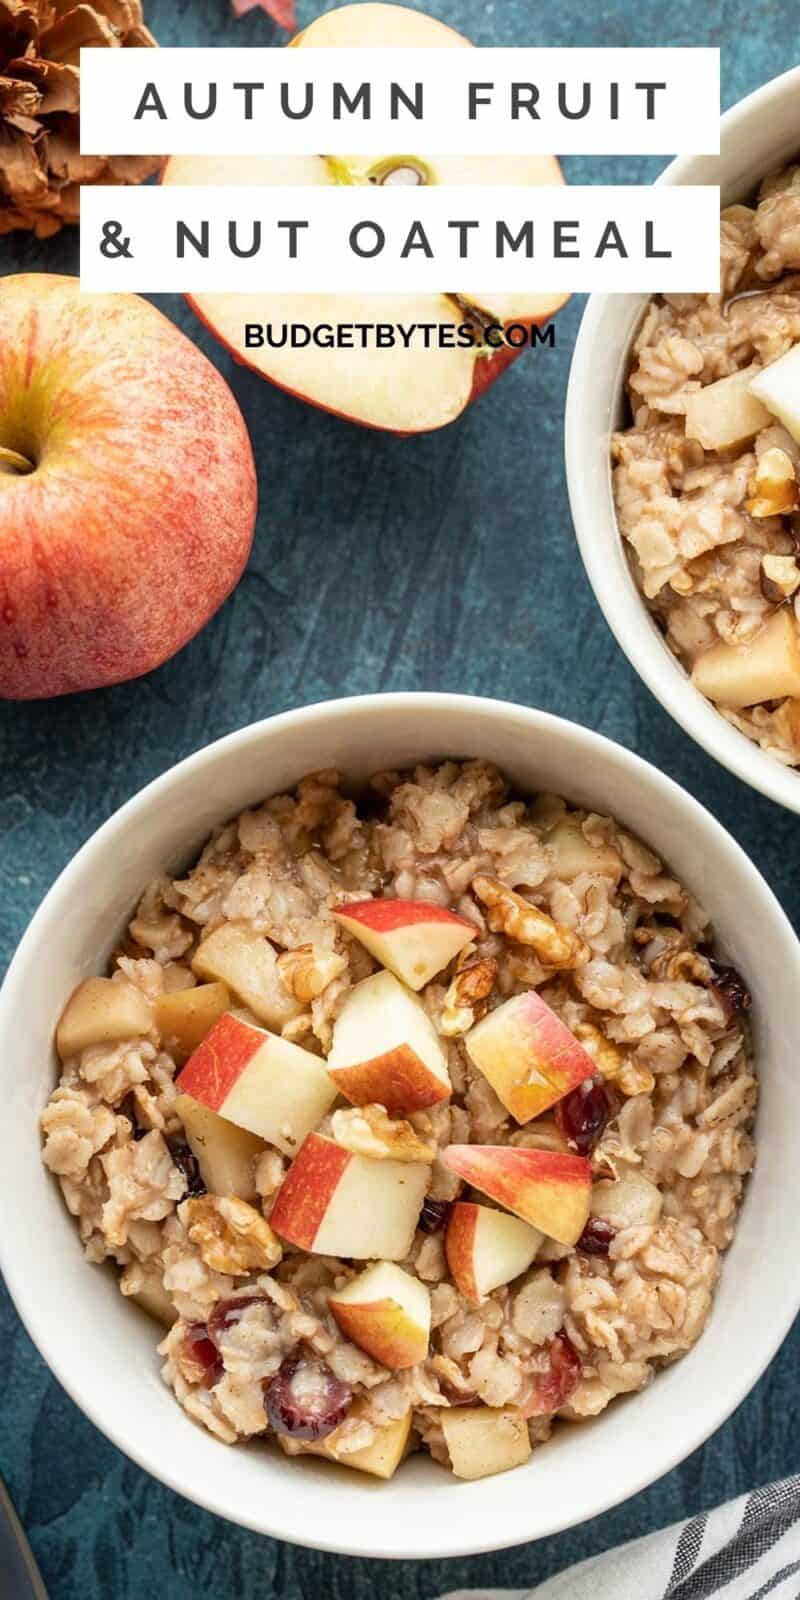 Two bowls of autumn fruit and nut oatmeal, title text at the top